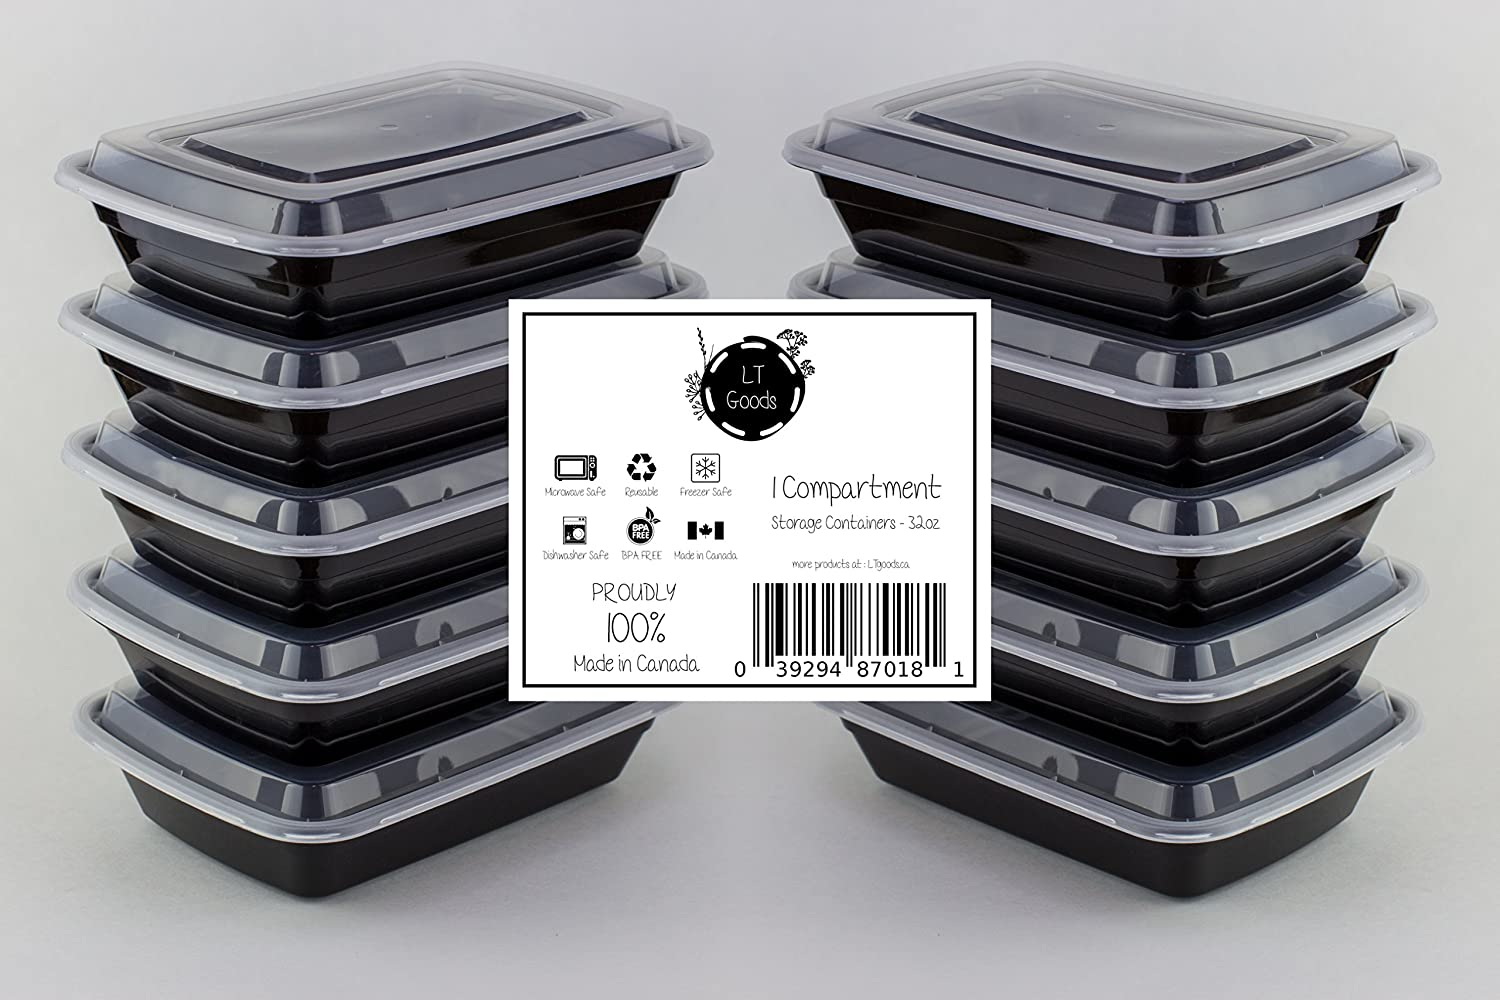 LT Goods 1 Compartment Stackable Meal Prep Food Storage Containers - 32oz, 10 pack - 100% Made in Canada